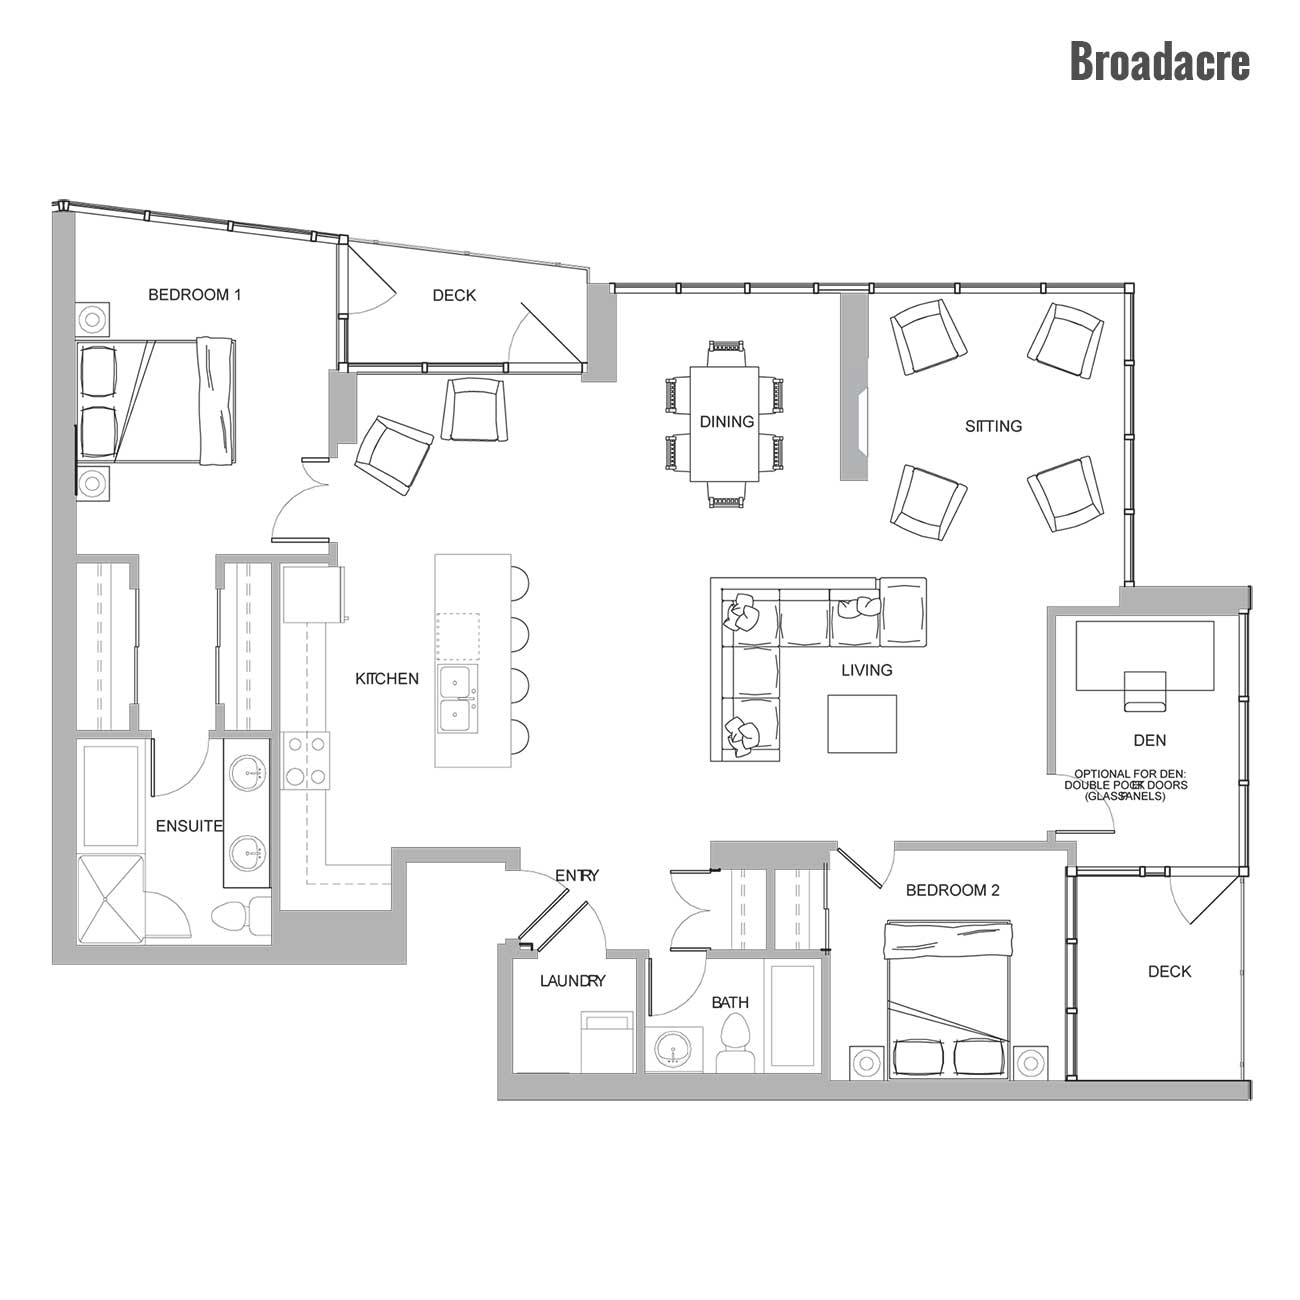 Broadacre Plan